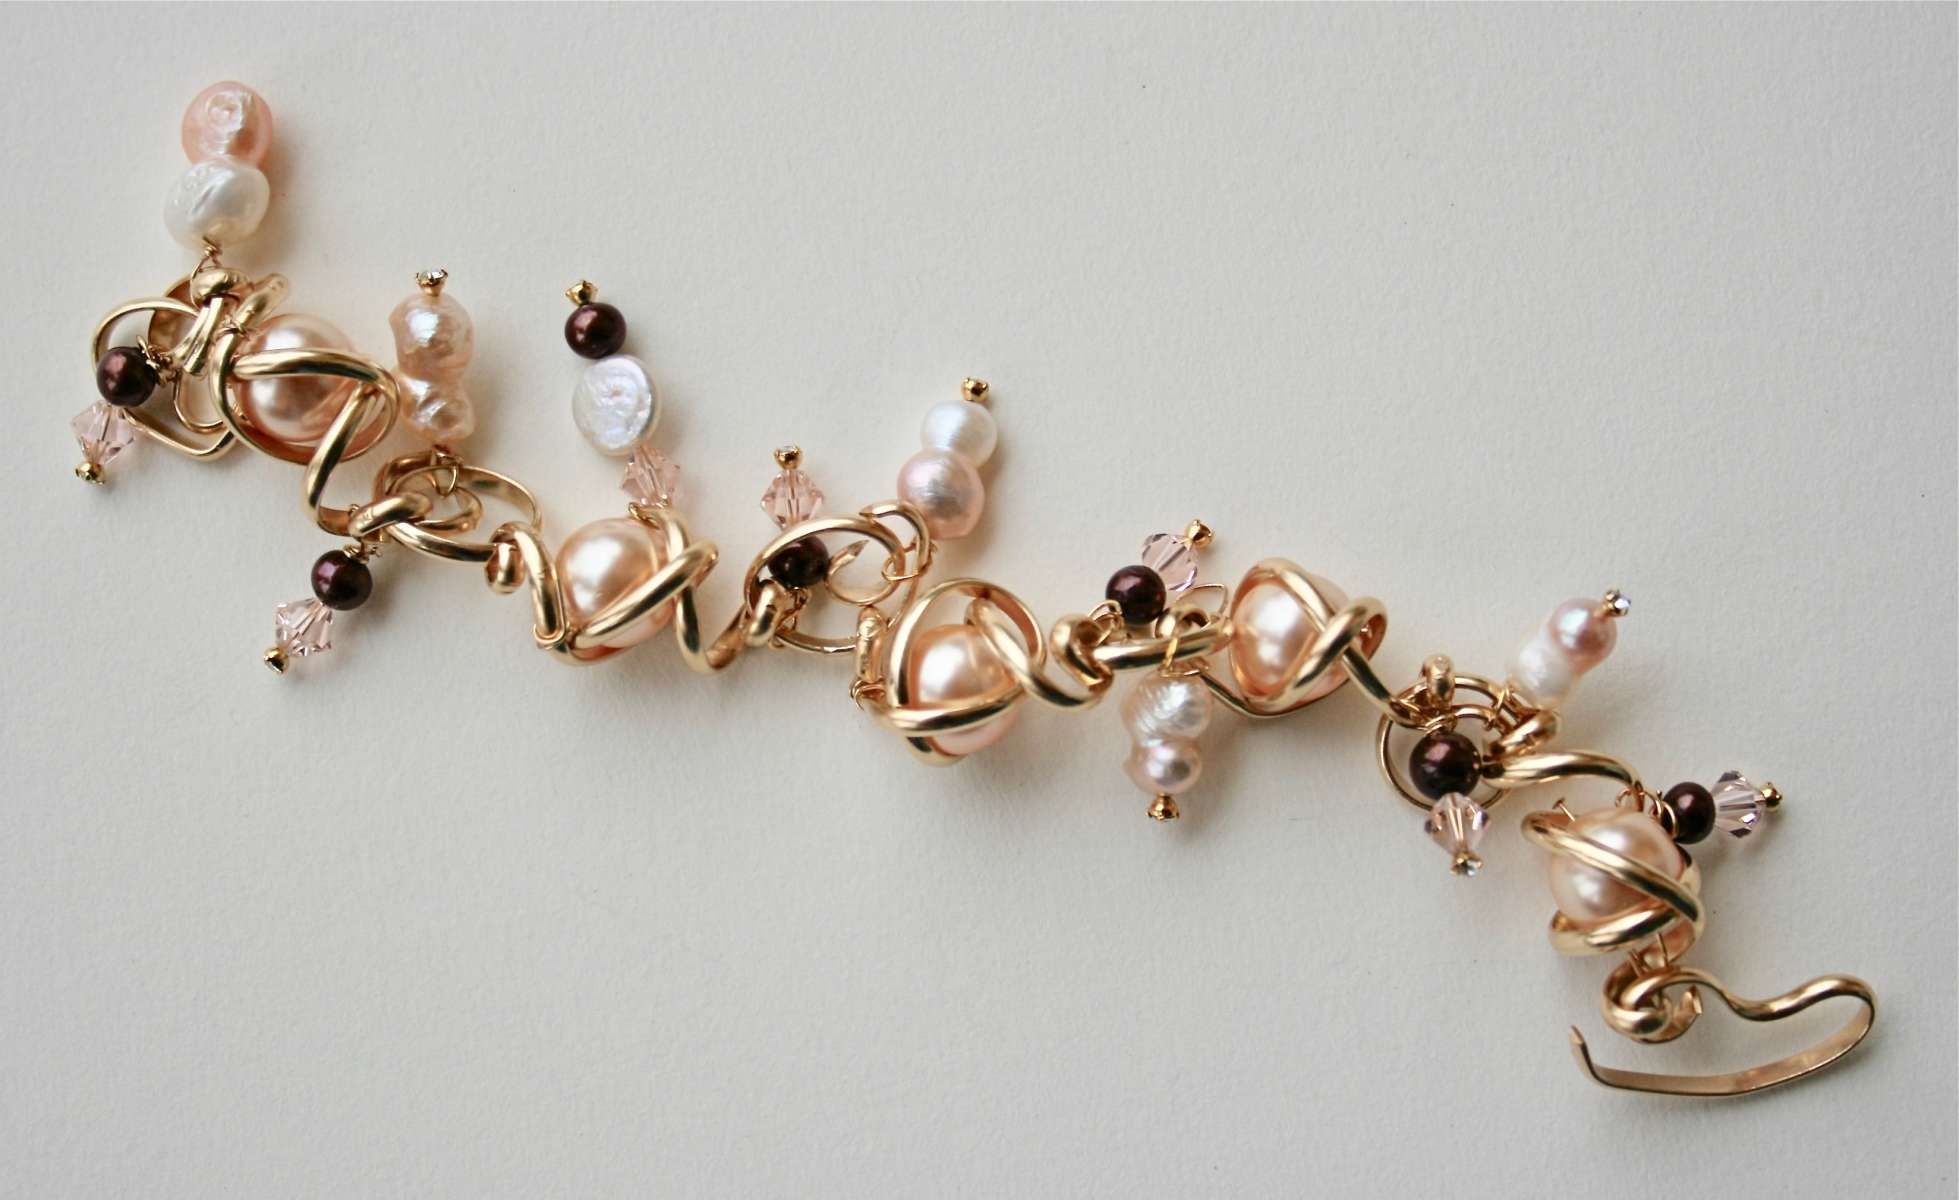 Twists and turns charm bracelet, Gold-filled